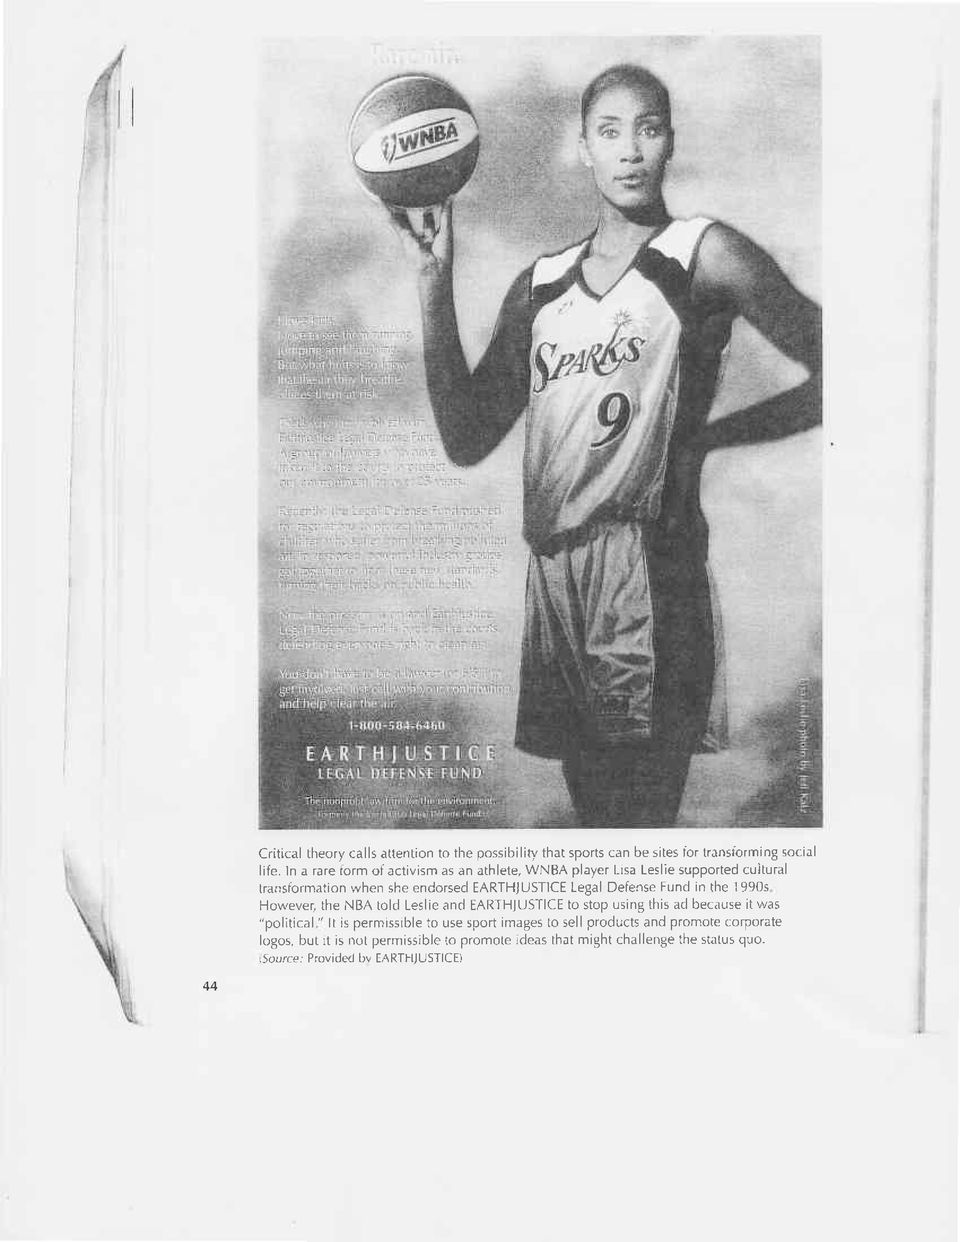 "Defense Fund in the 1990s However, the NBA told Leslie and EARTHJUSTICE to stop using this ad because it was ""political "" lt is permissrble"